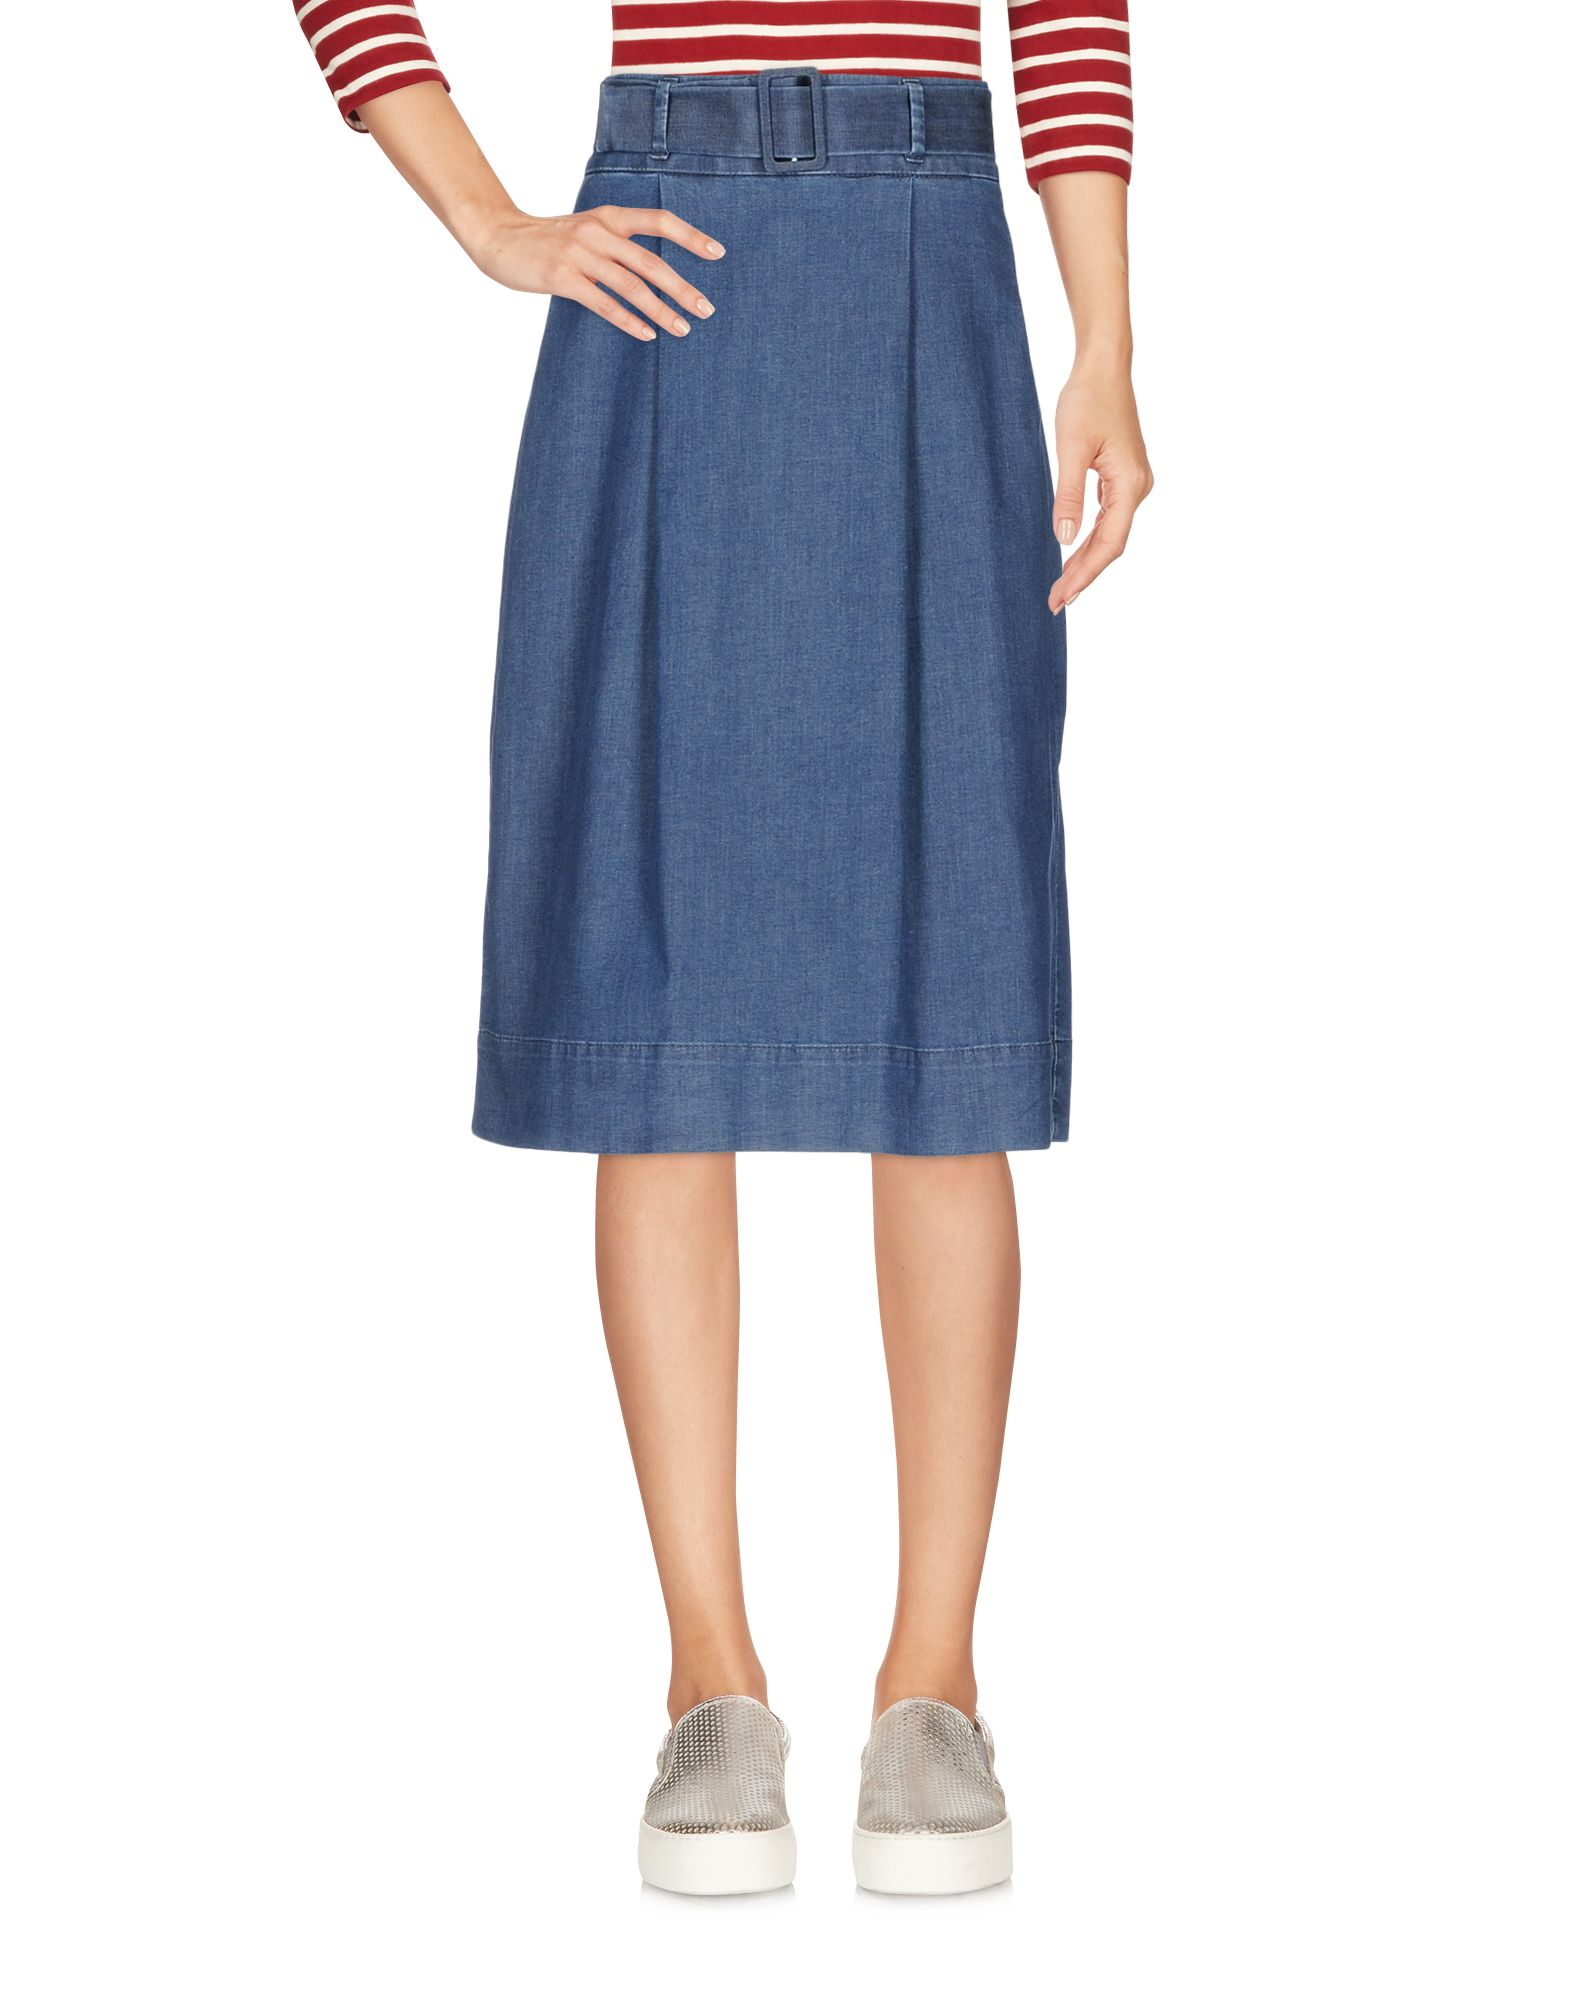 Haikure Denim skirt